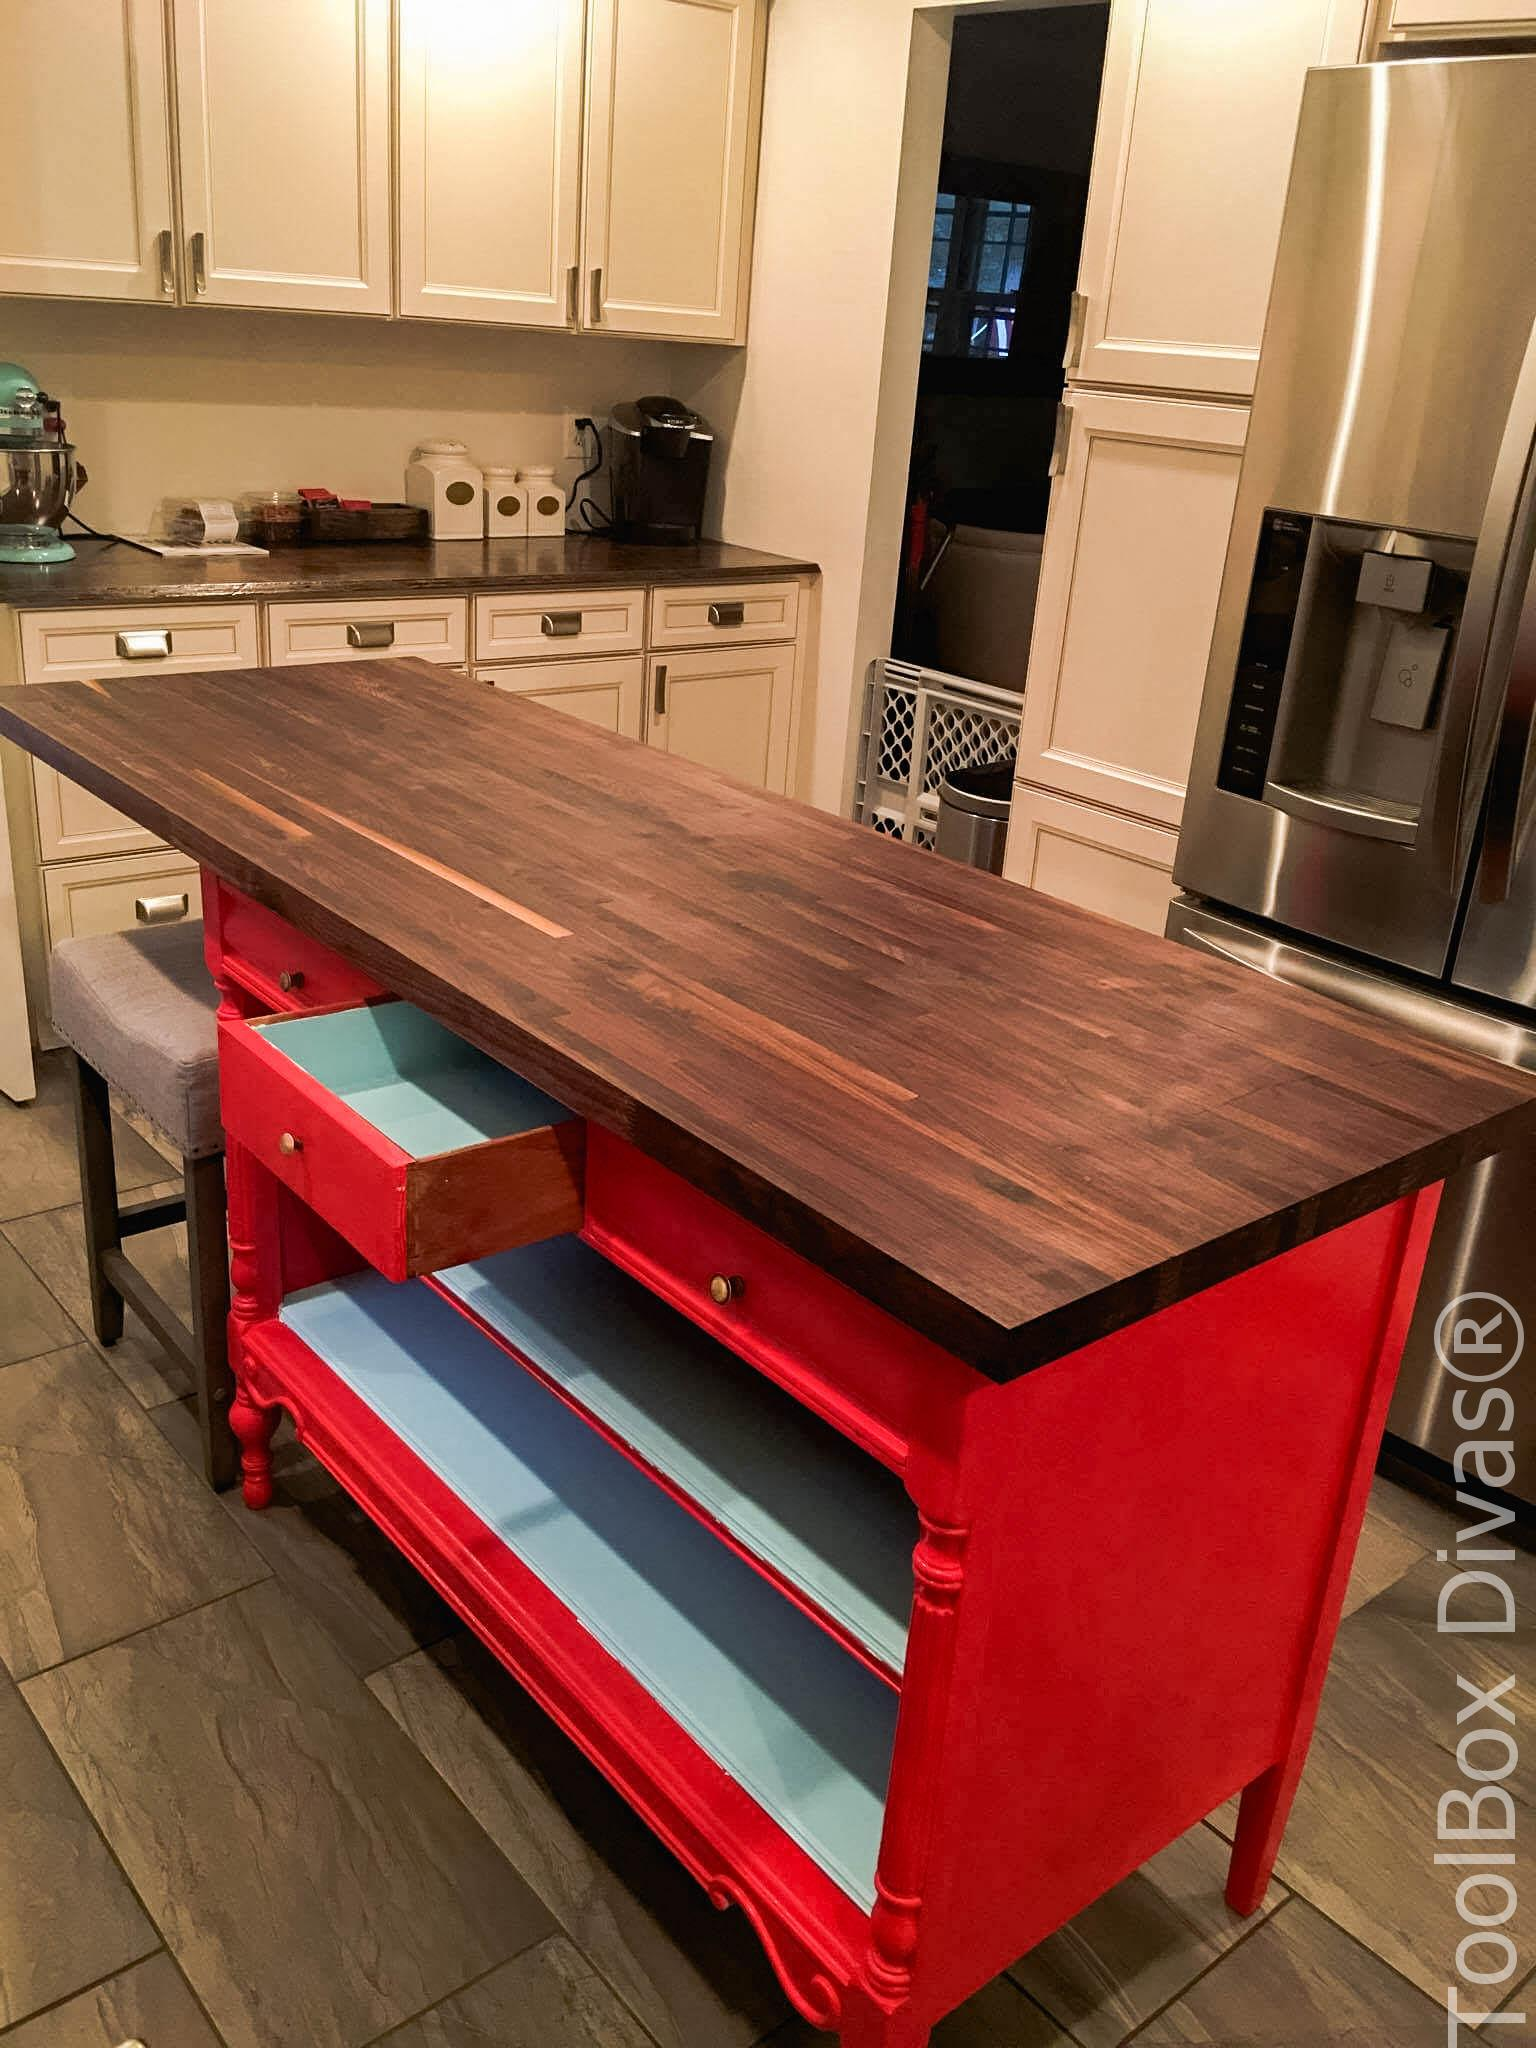 All Dressed Up Turn An Old Dresser Into A Kitchen Island Toolbox Divas